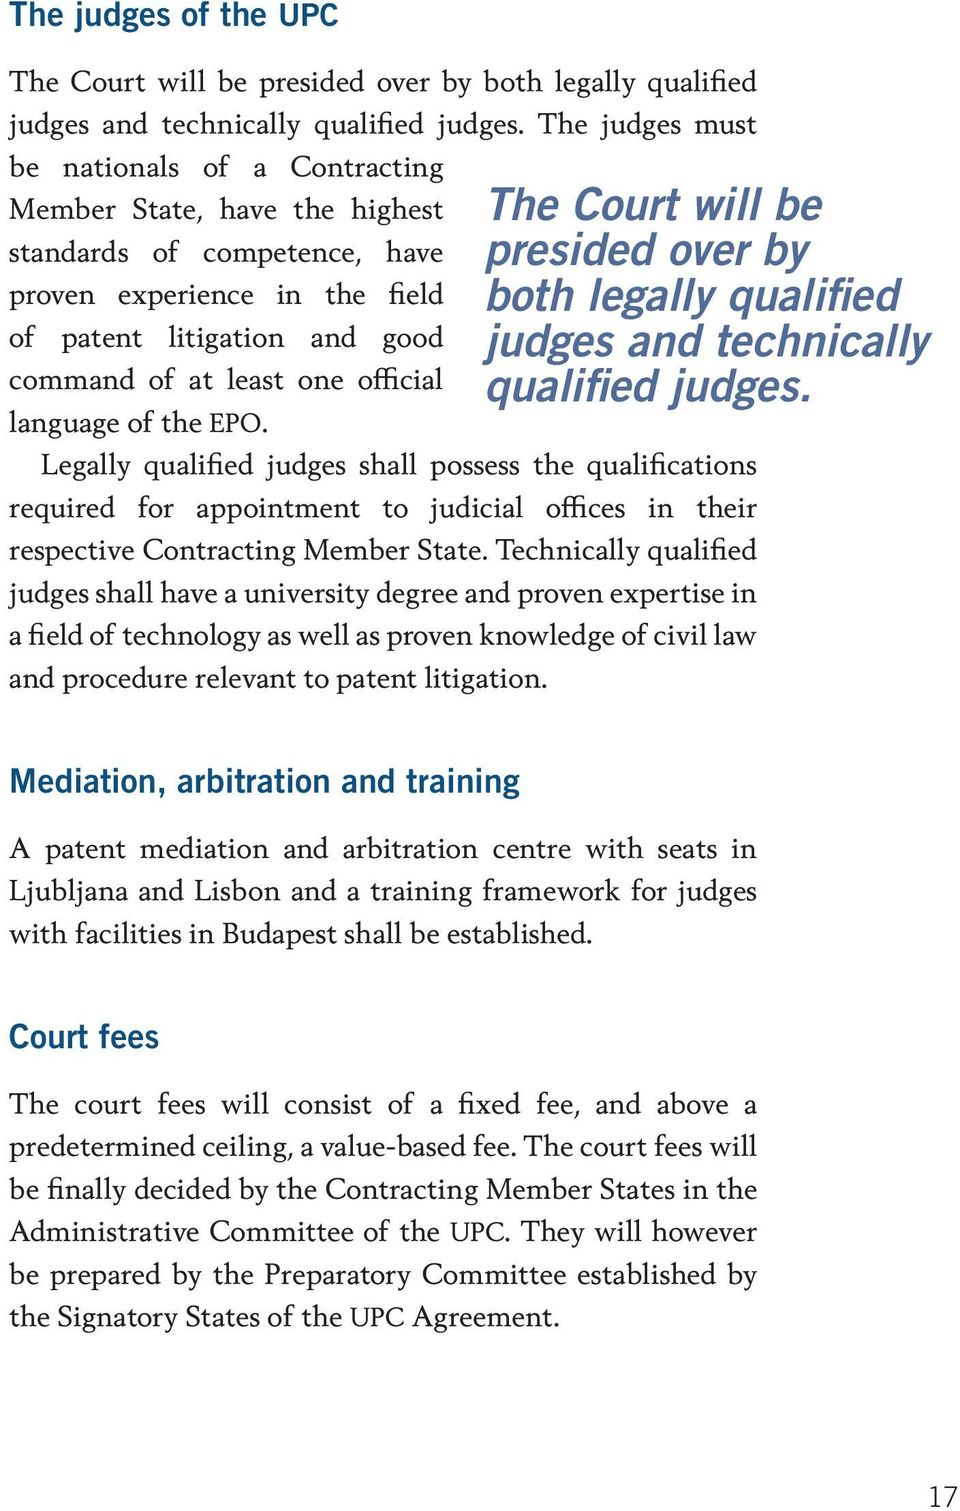 official language of the EPO. Legally qualified judges shall possess the qualifications required for appointment to judicial offices in their respective Contracting Member State.